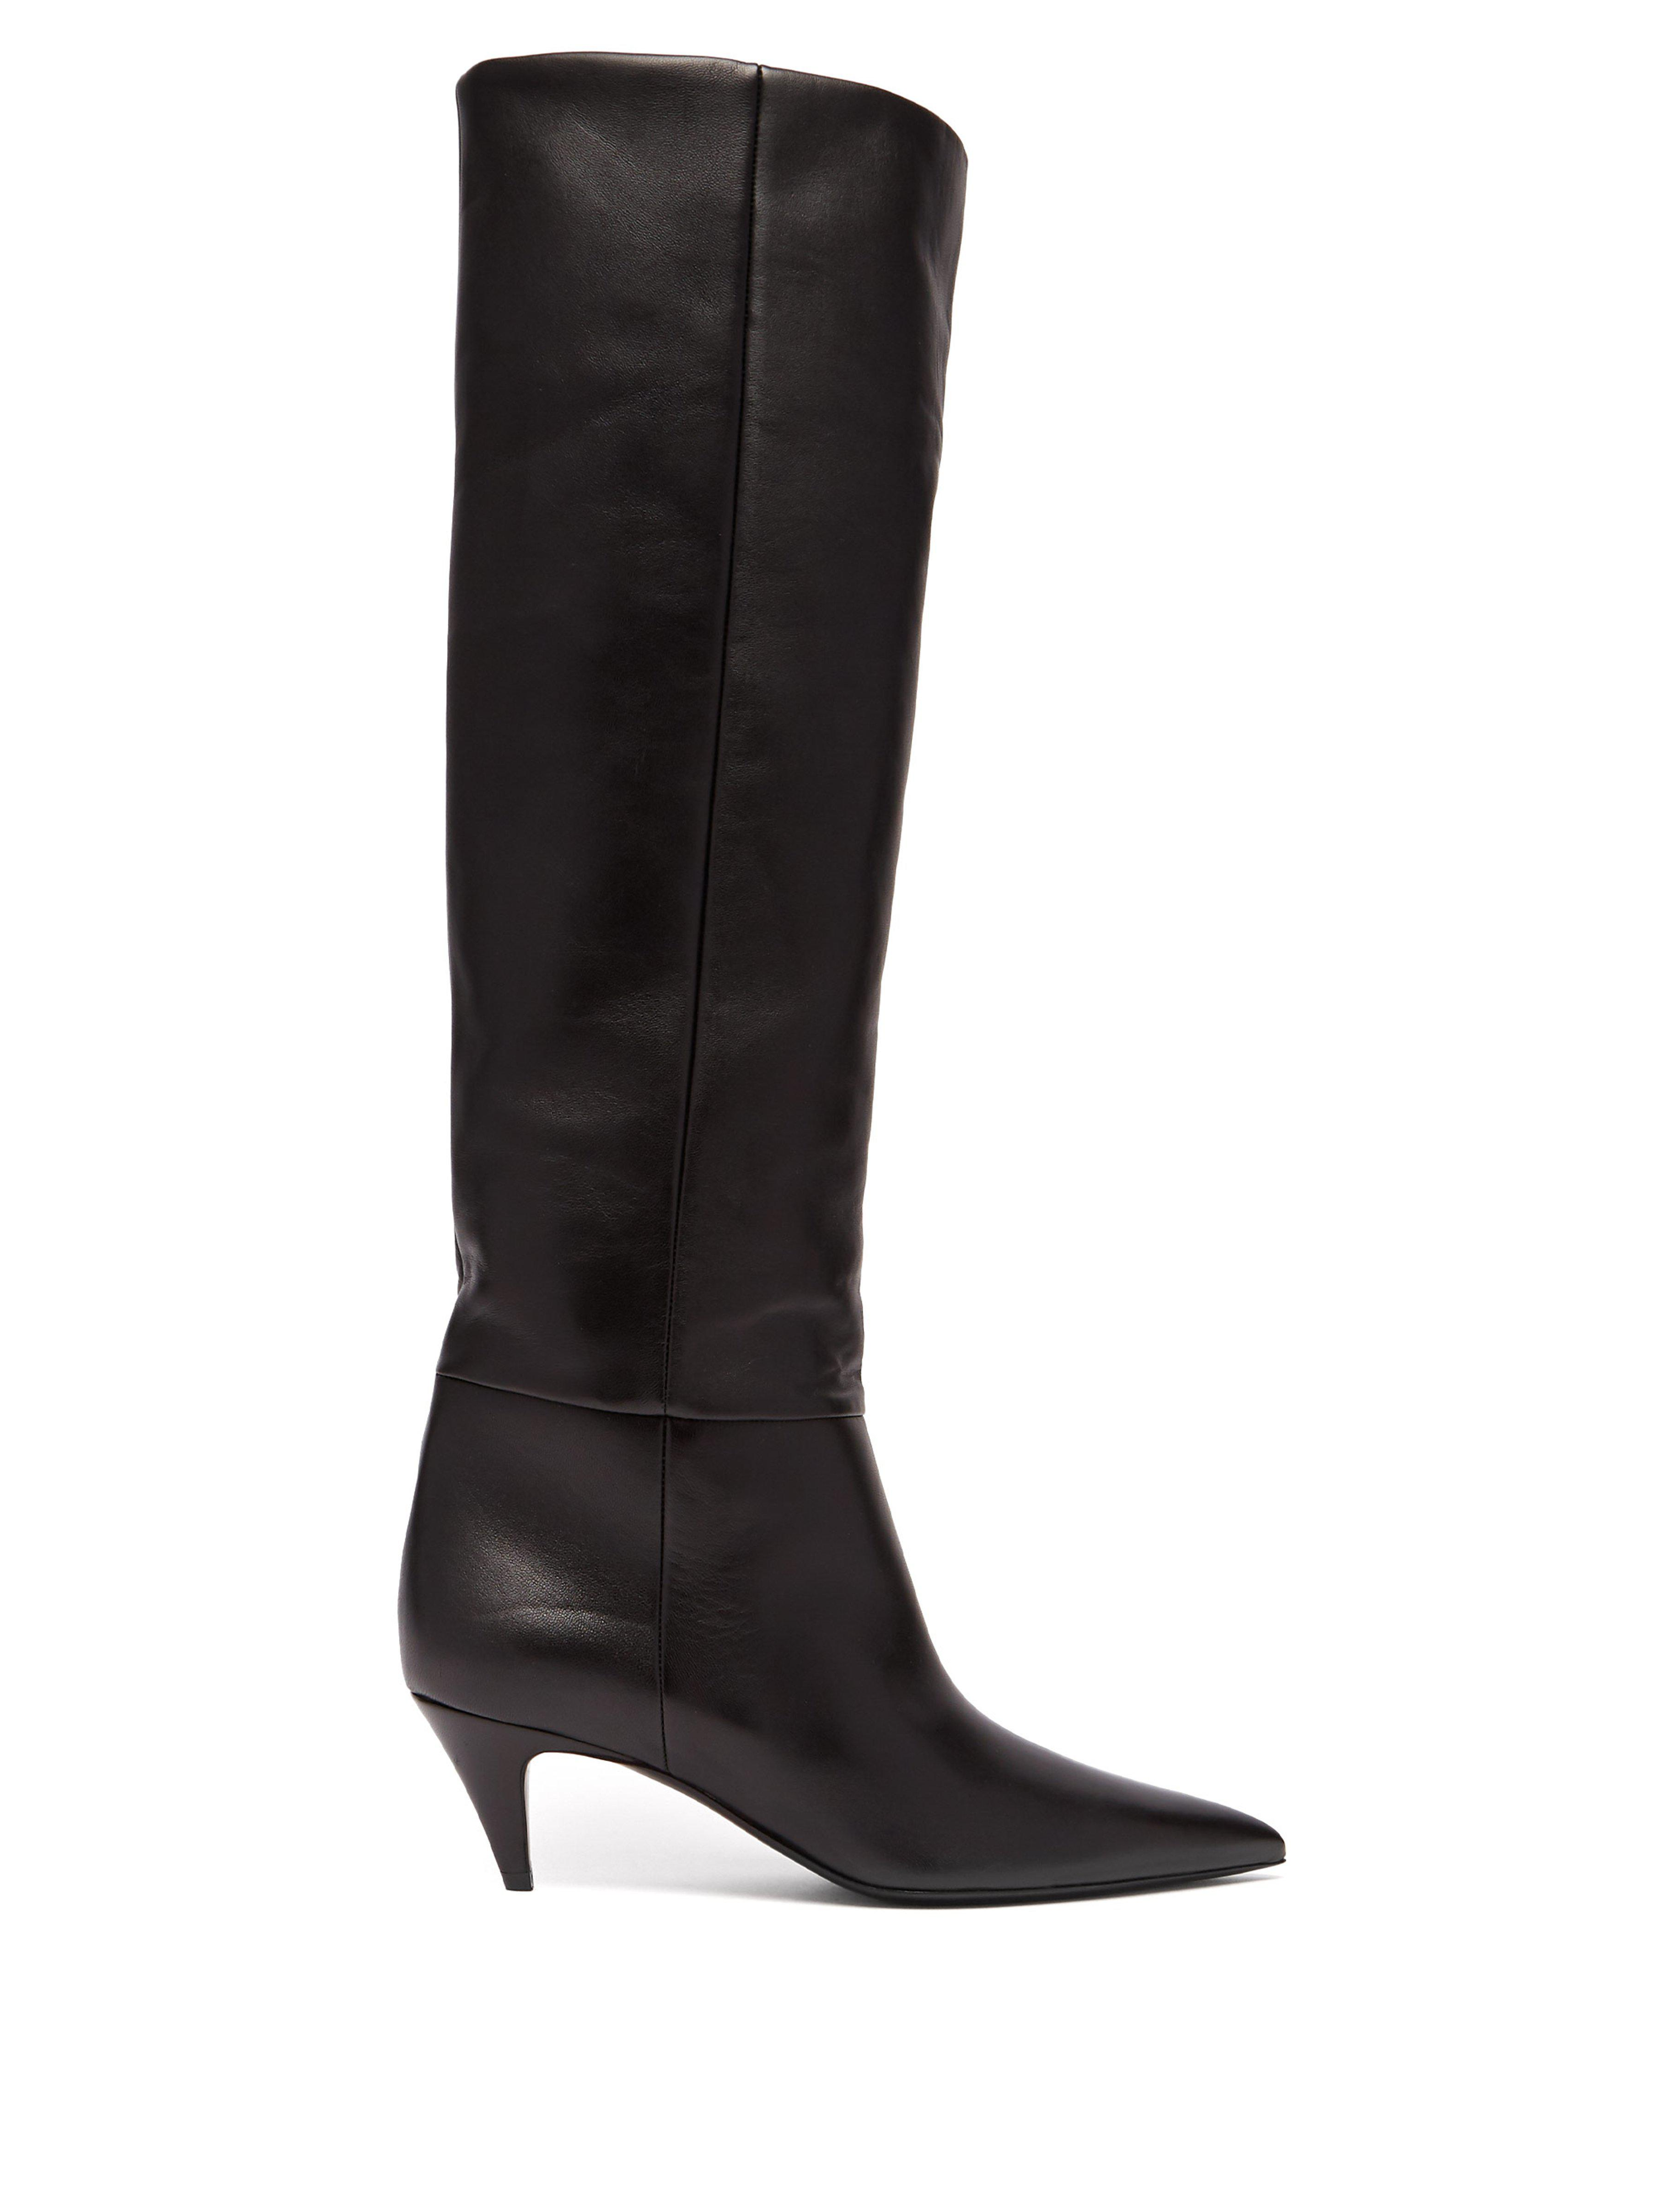 d5a9fede304 Saint Laurent Charlotte 55 Leather Knee Boots in Black - Lyst